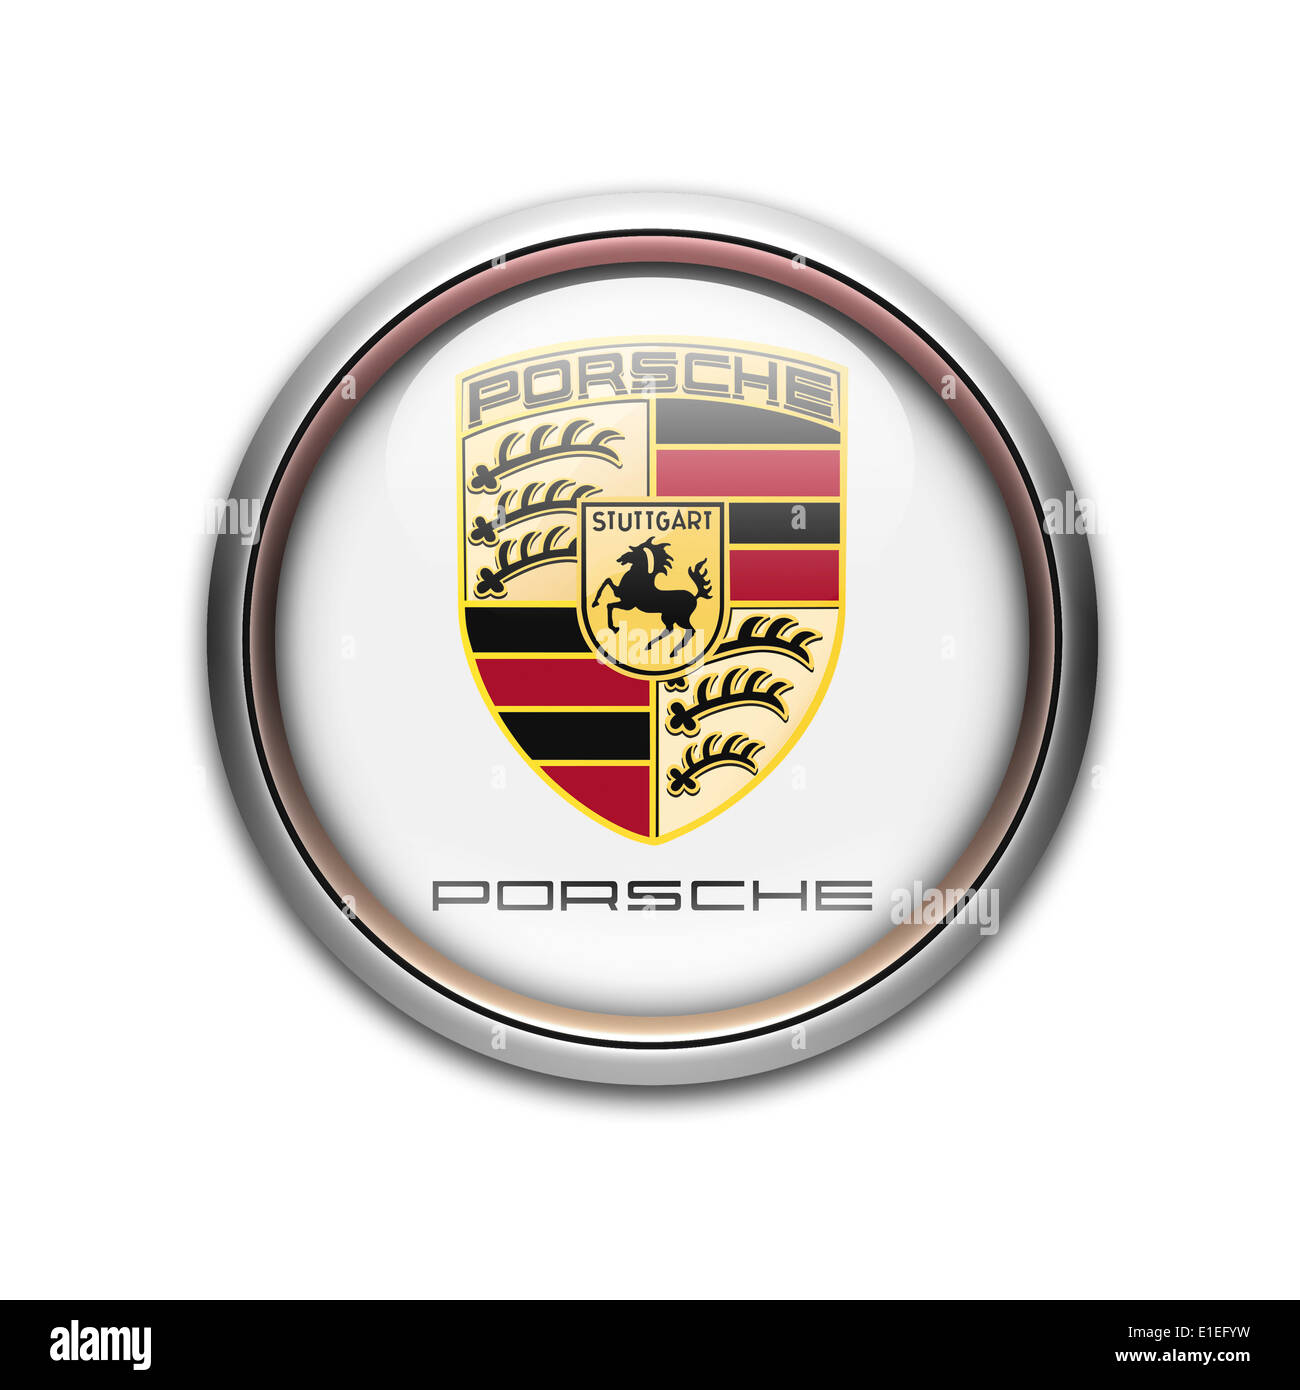 Porsche Logo Stock Photos Amp Porsche Logo Stock Images Alamy